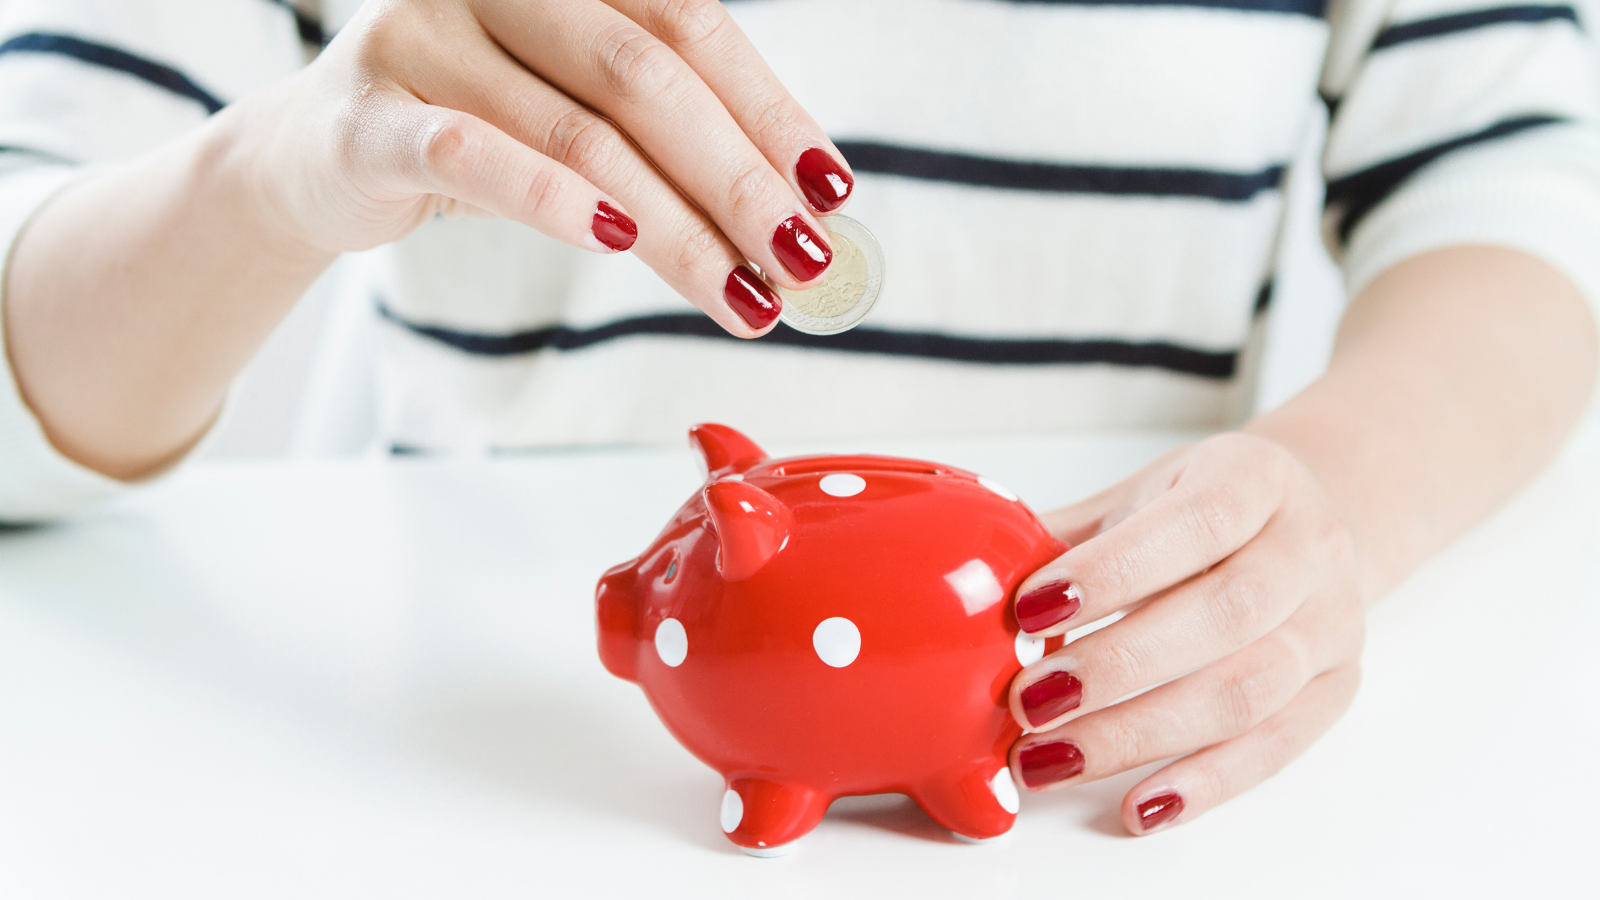 42% of people don't think they are saving enough to be financially secure